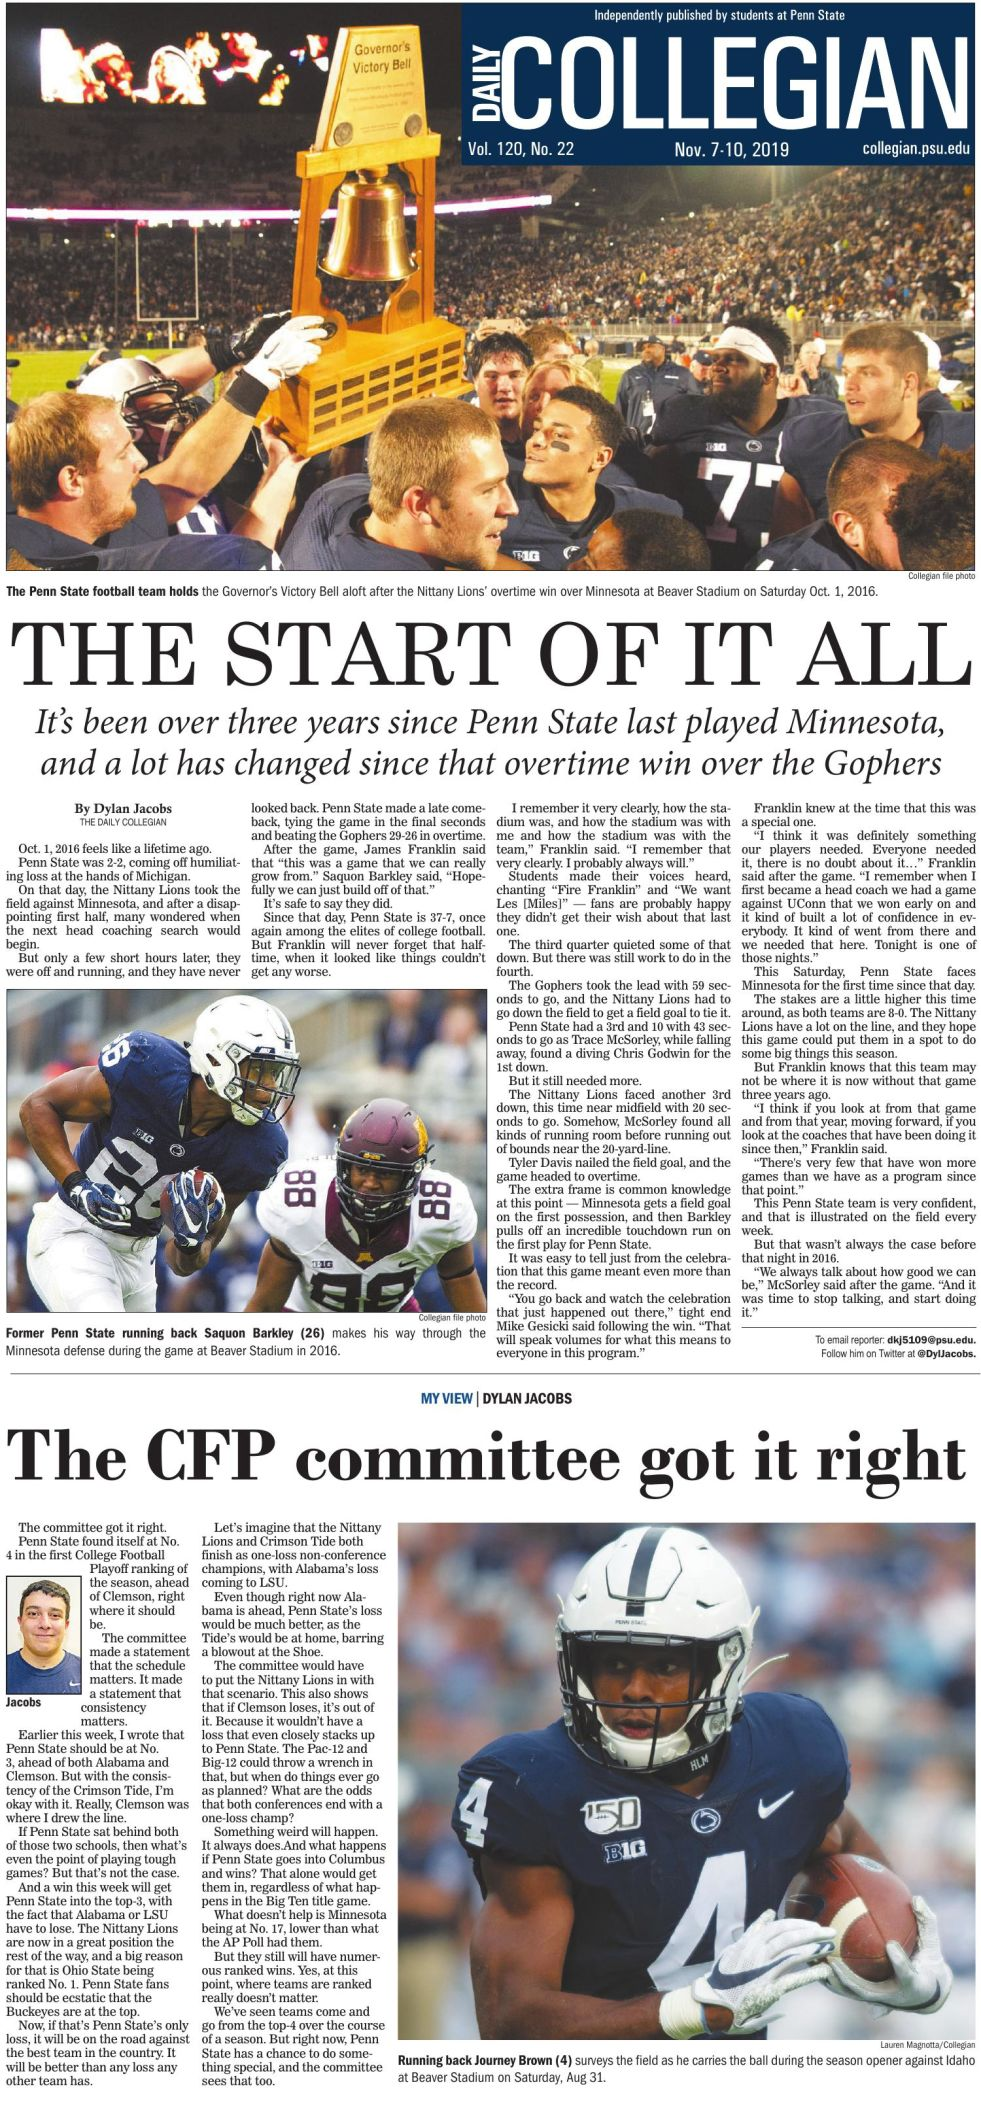 The Daily Collegian for Nov. 7, 2019